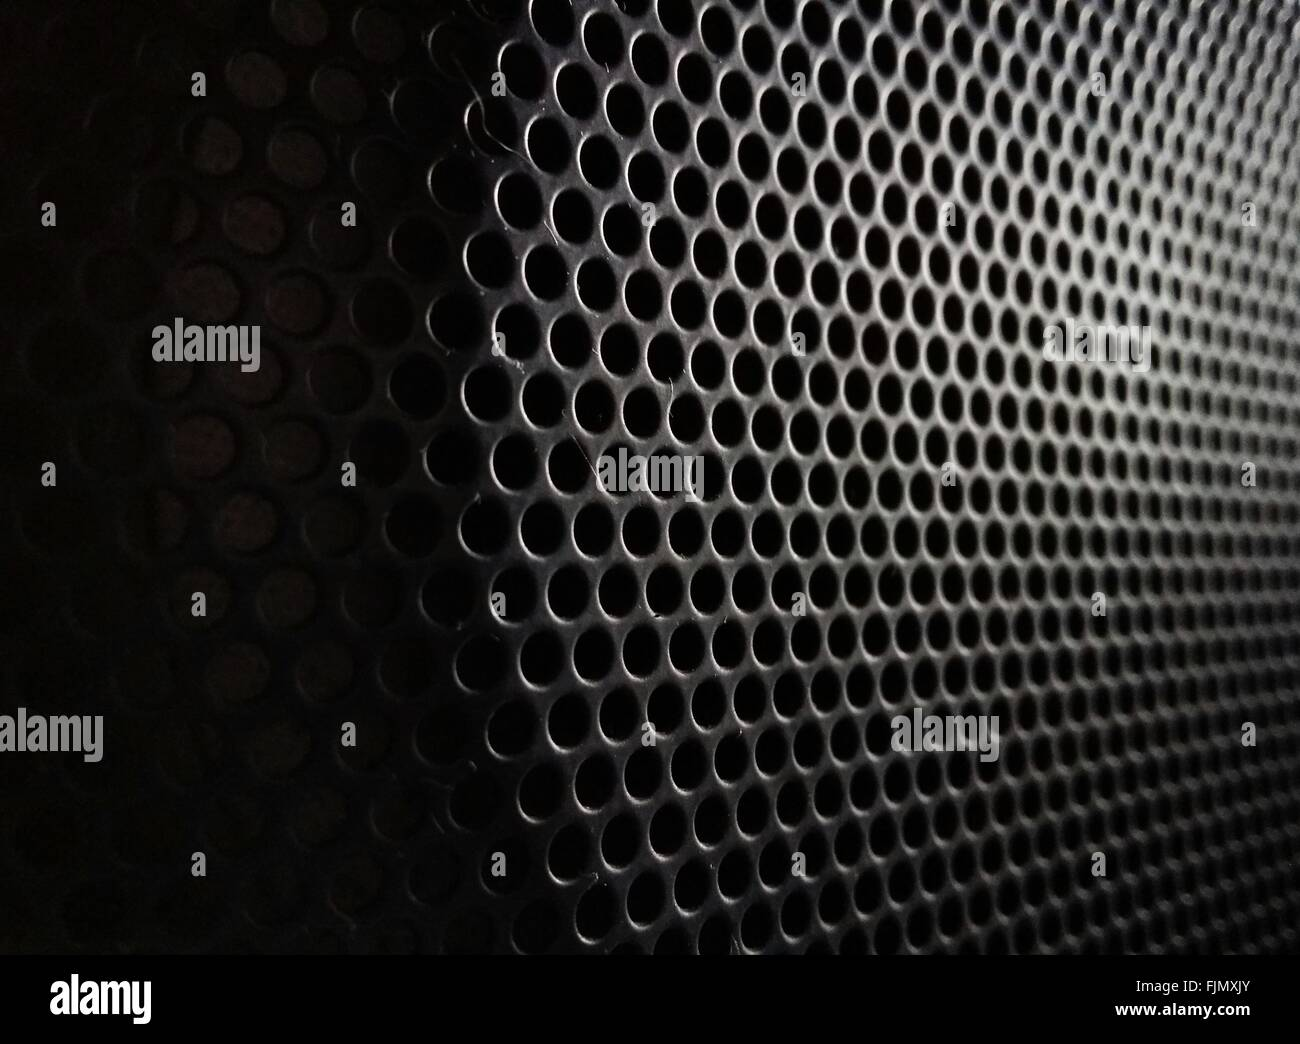 Full Frame Shot Of Perforated Metal - Stock Image